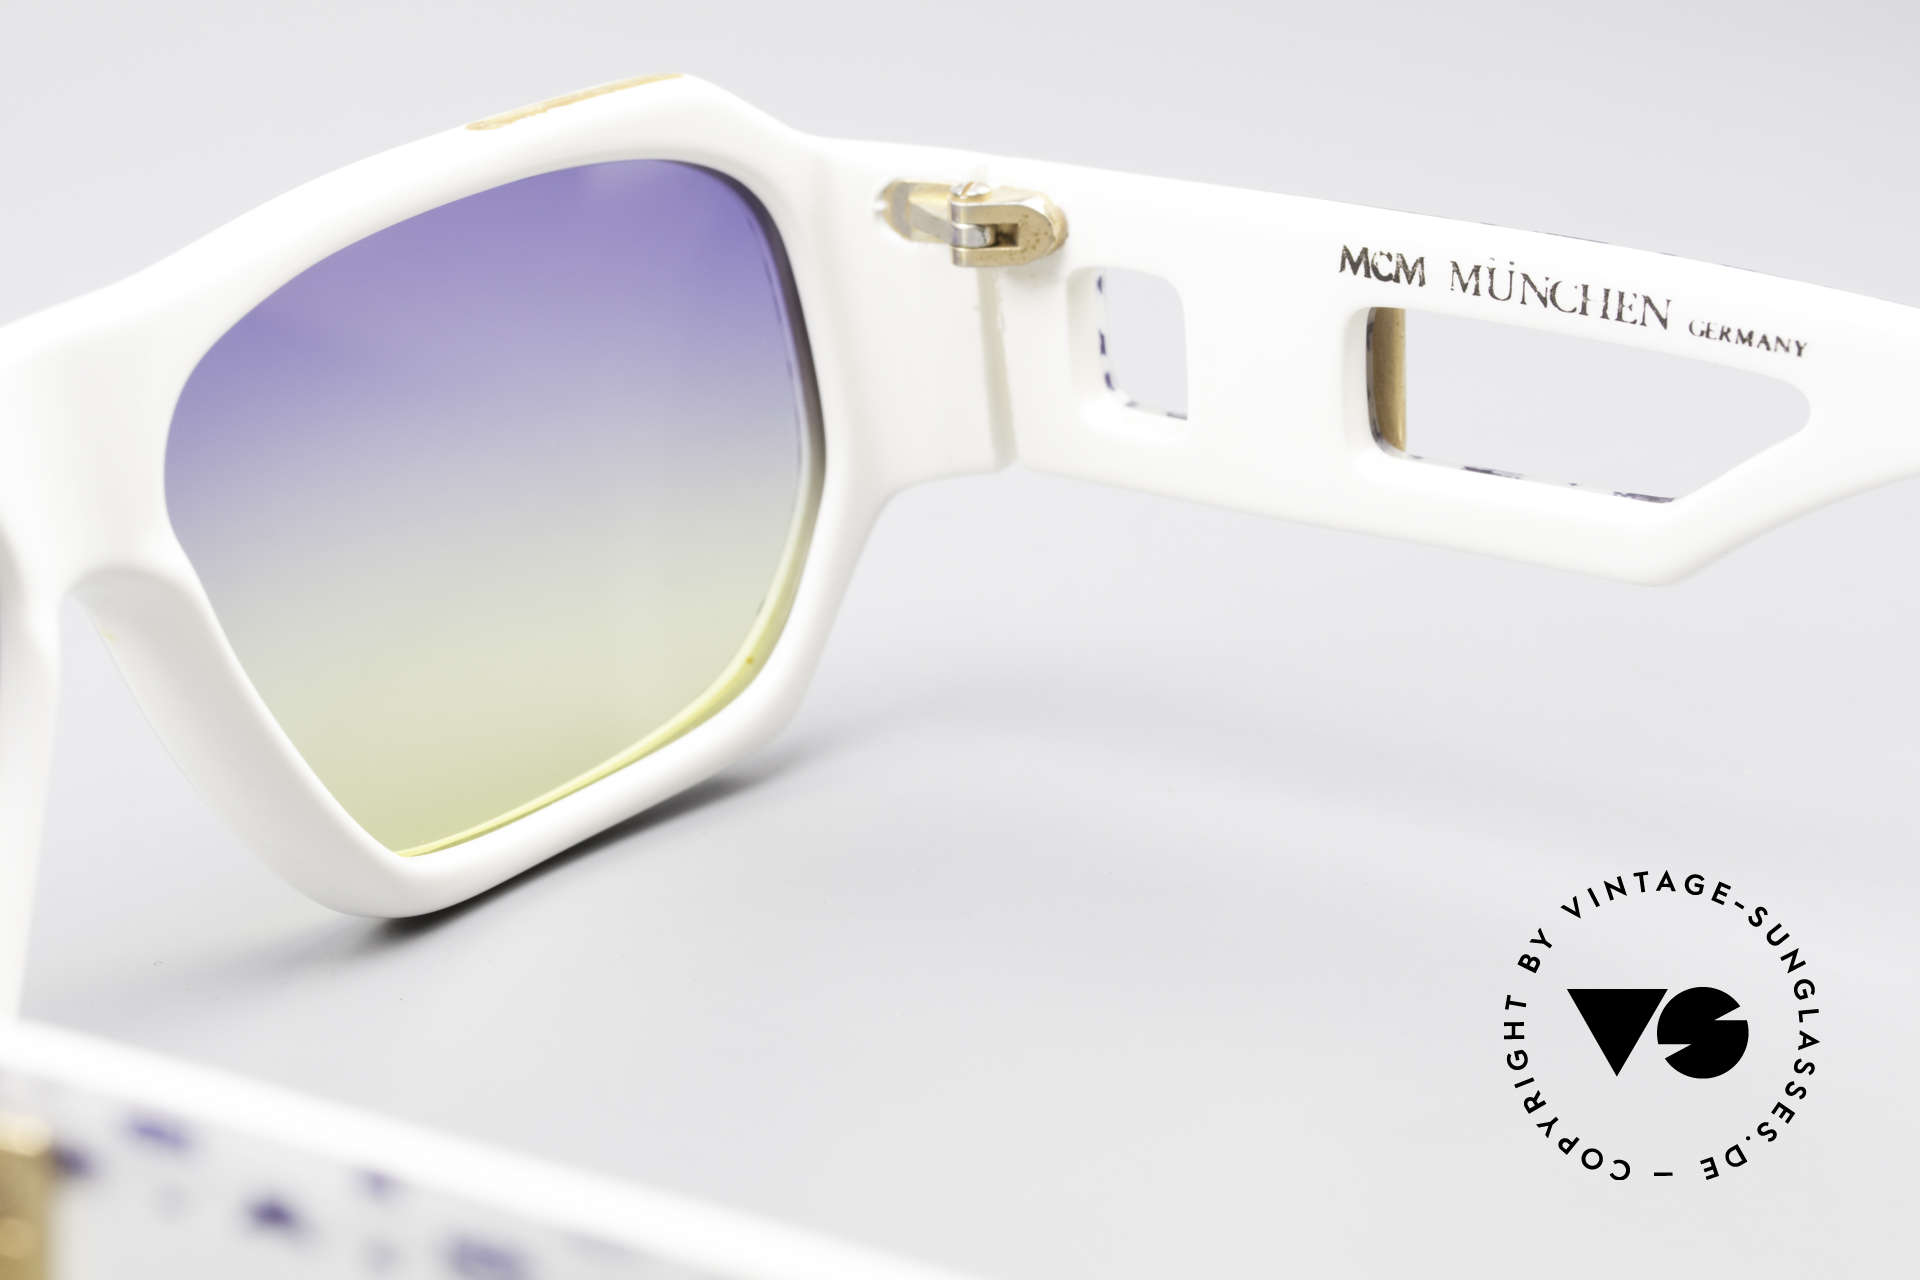 MCM München A2 Rare Designer Sunglasses 80s, NO RETRO, but a rare 80's original + Lacoste case, Made for Men and Women